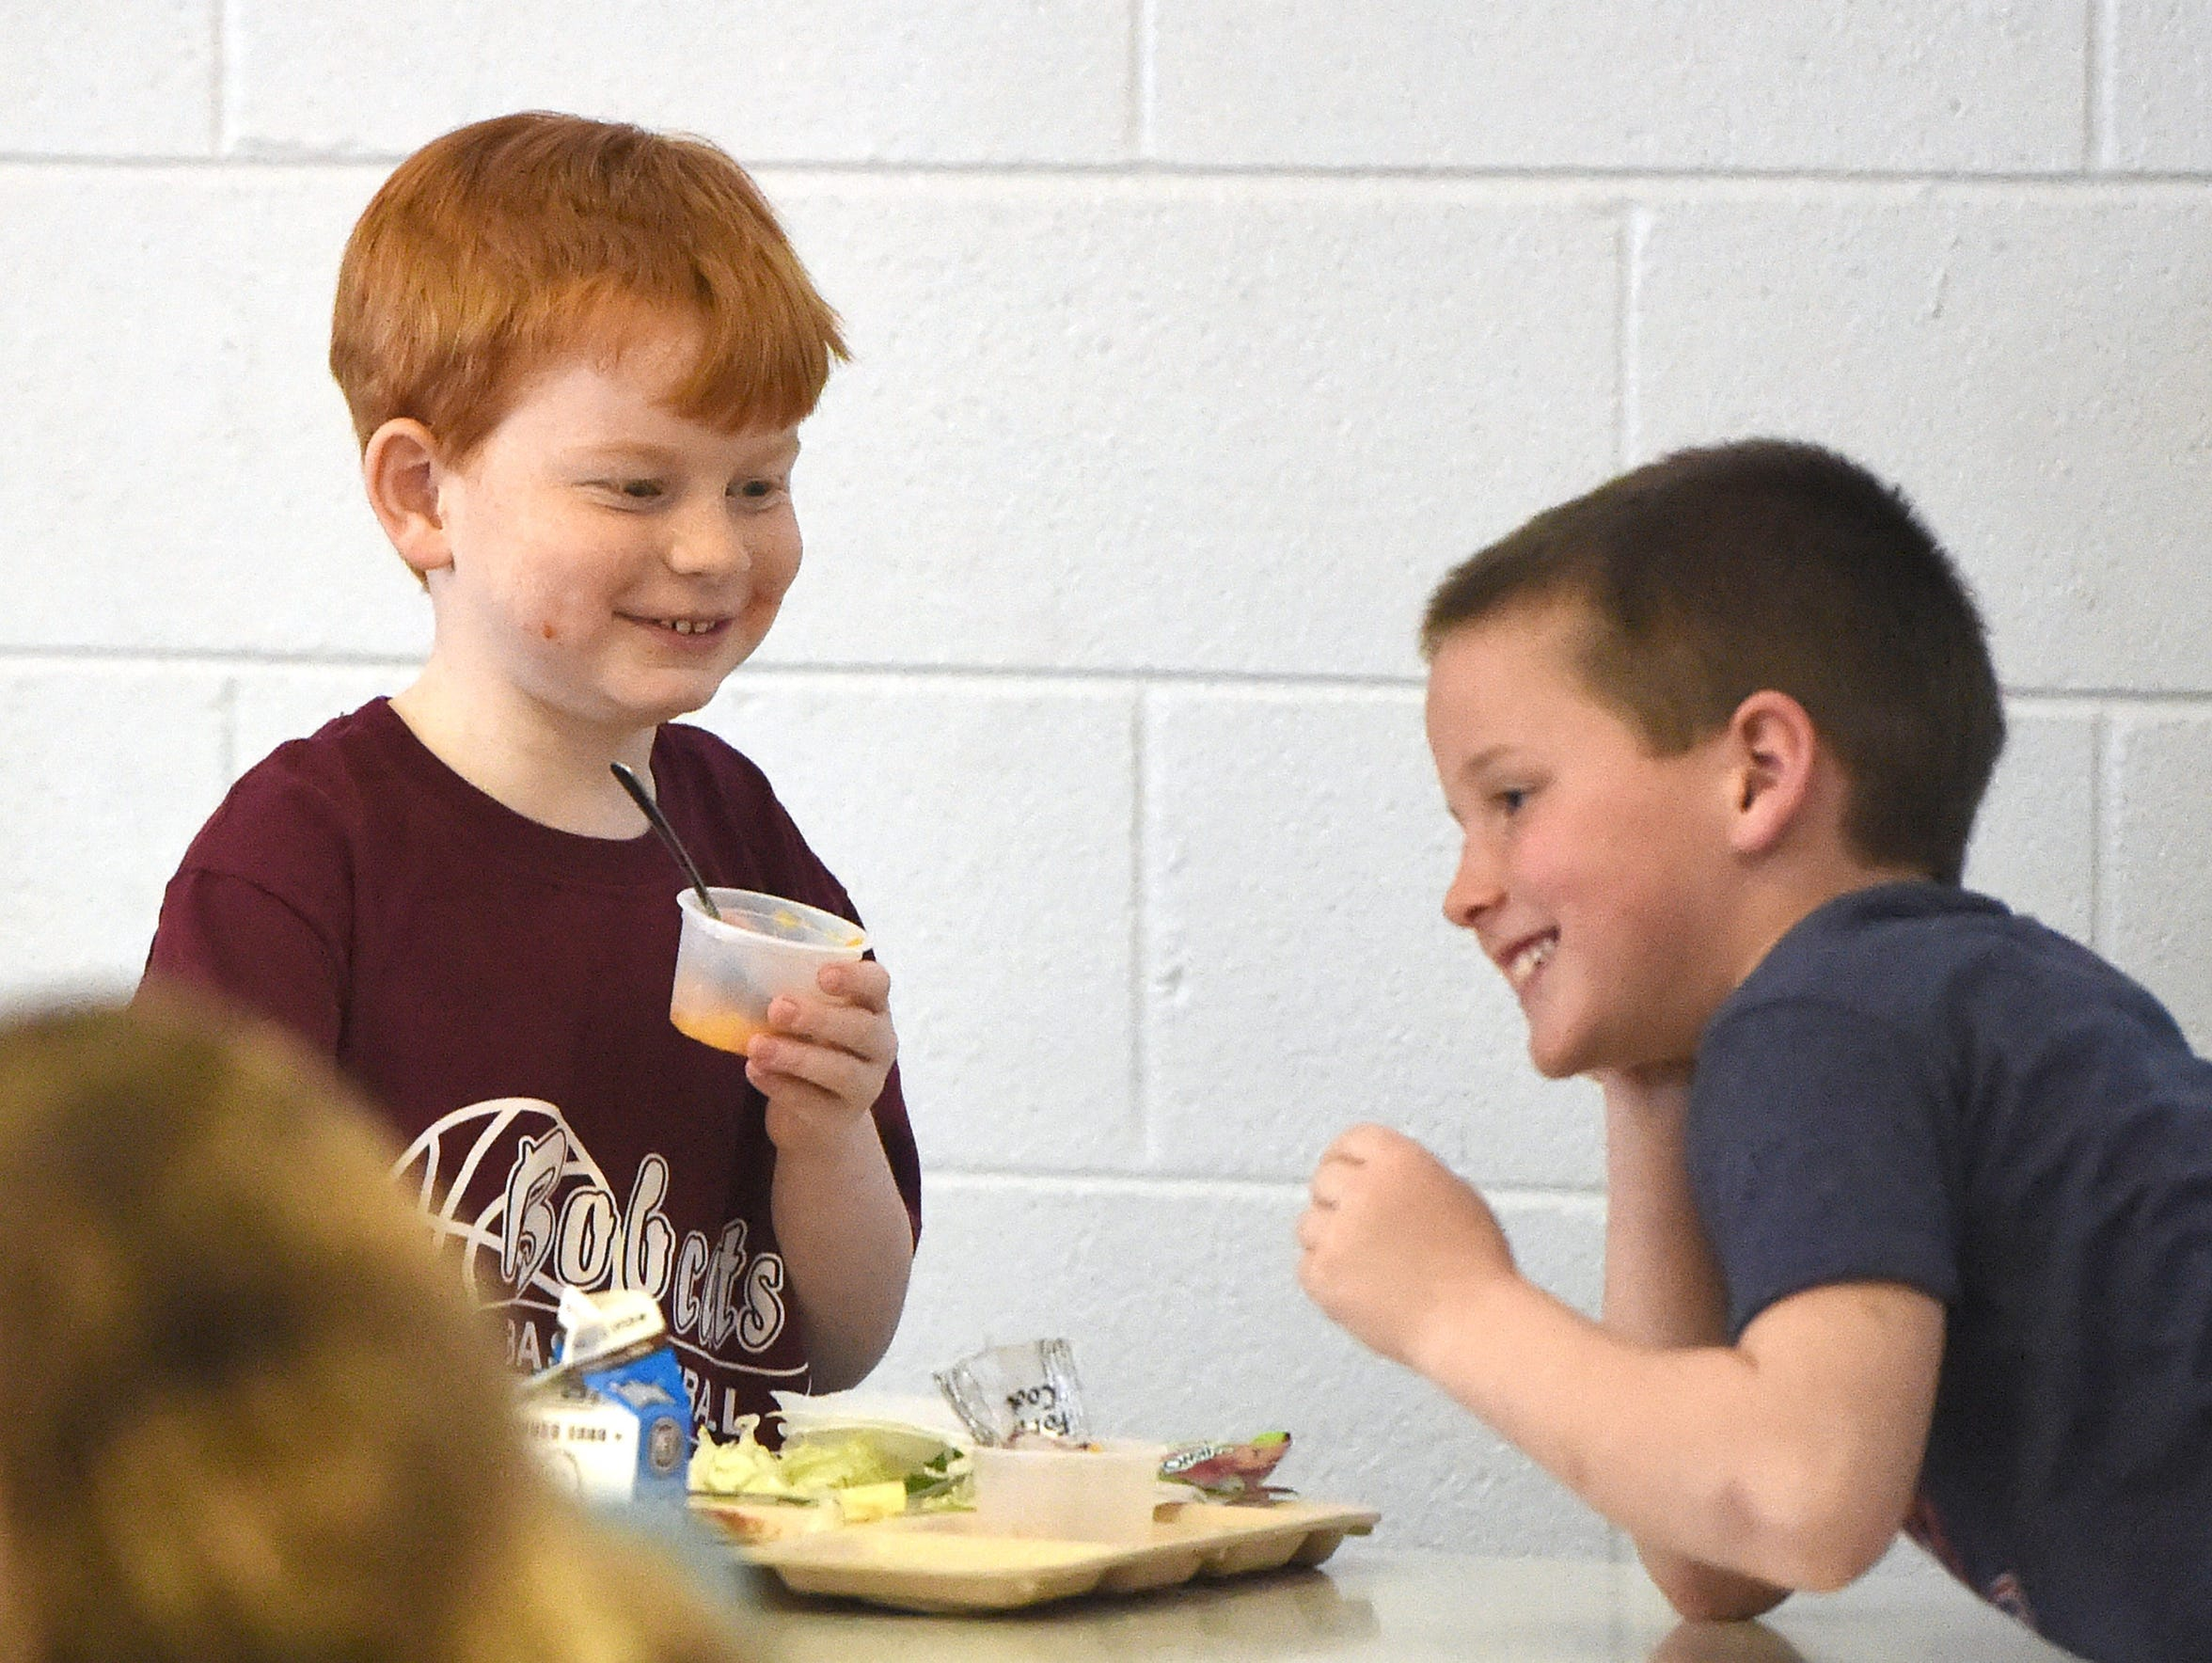 Highland County second graders Tristan Carpenter and